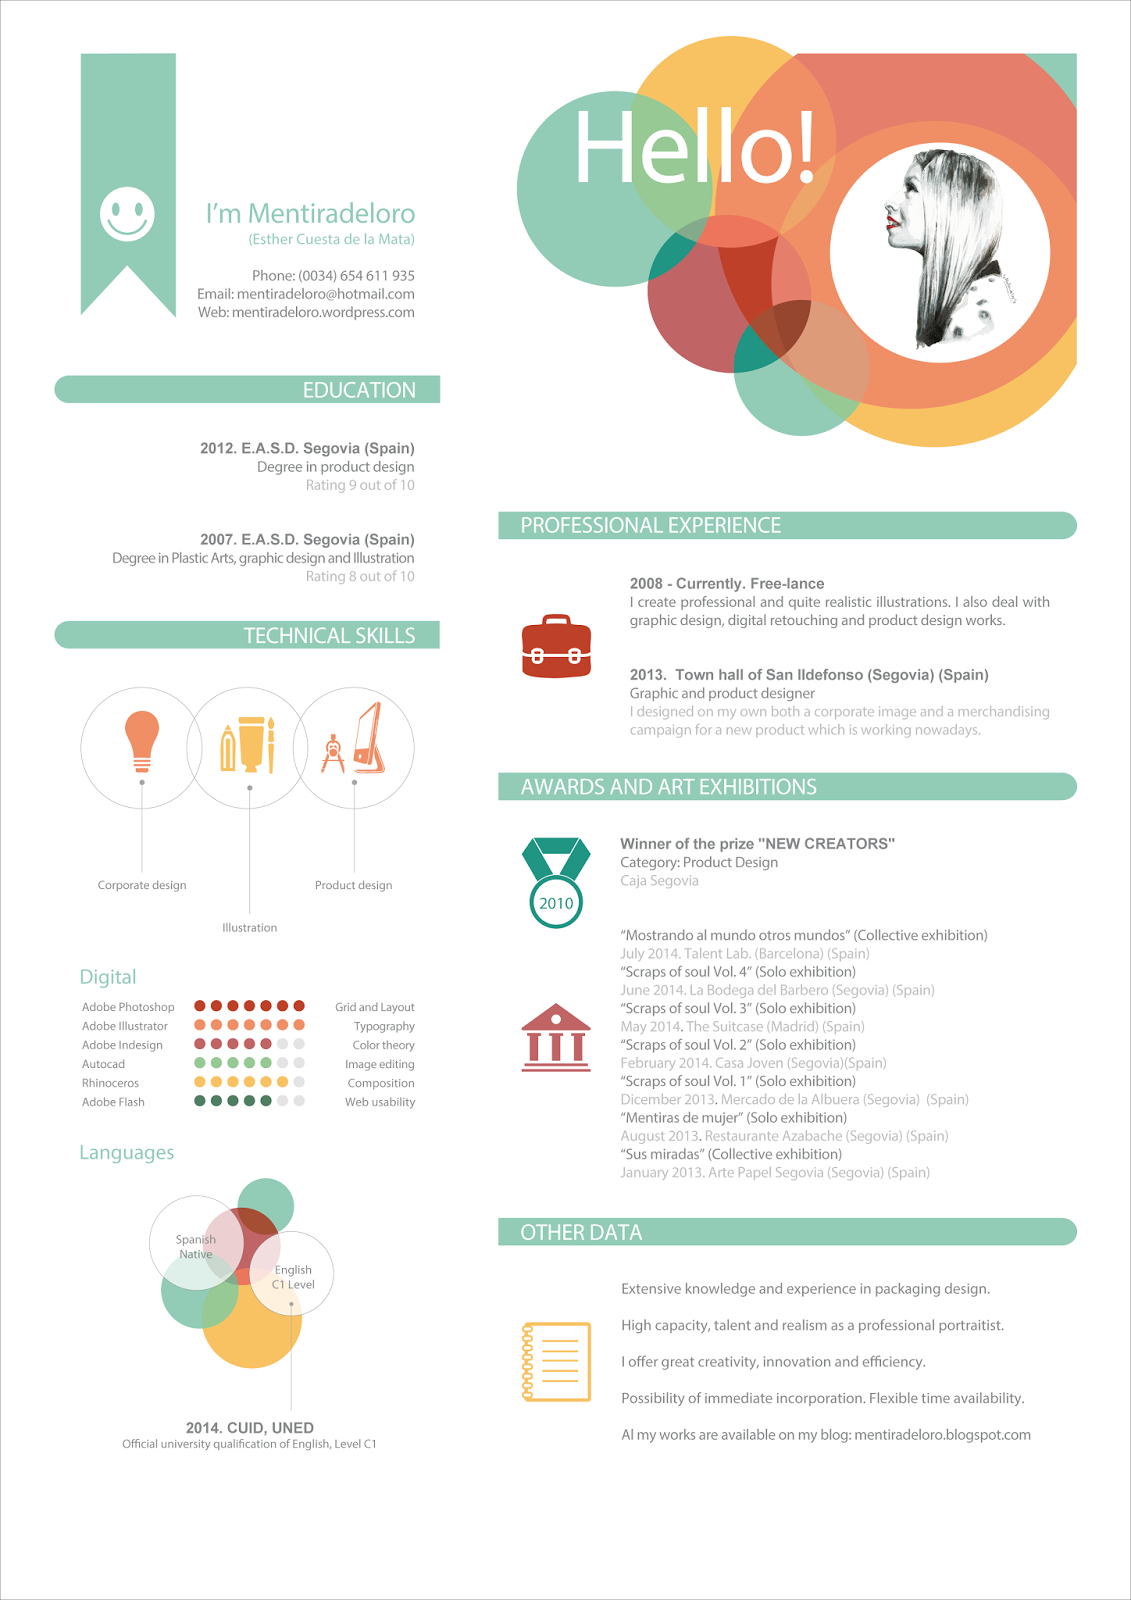 Mentiradeloro Creative Resume Knowledge Creative Resume